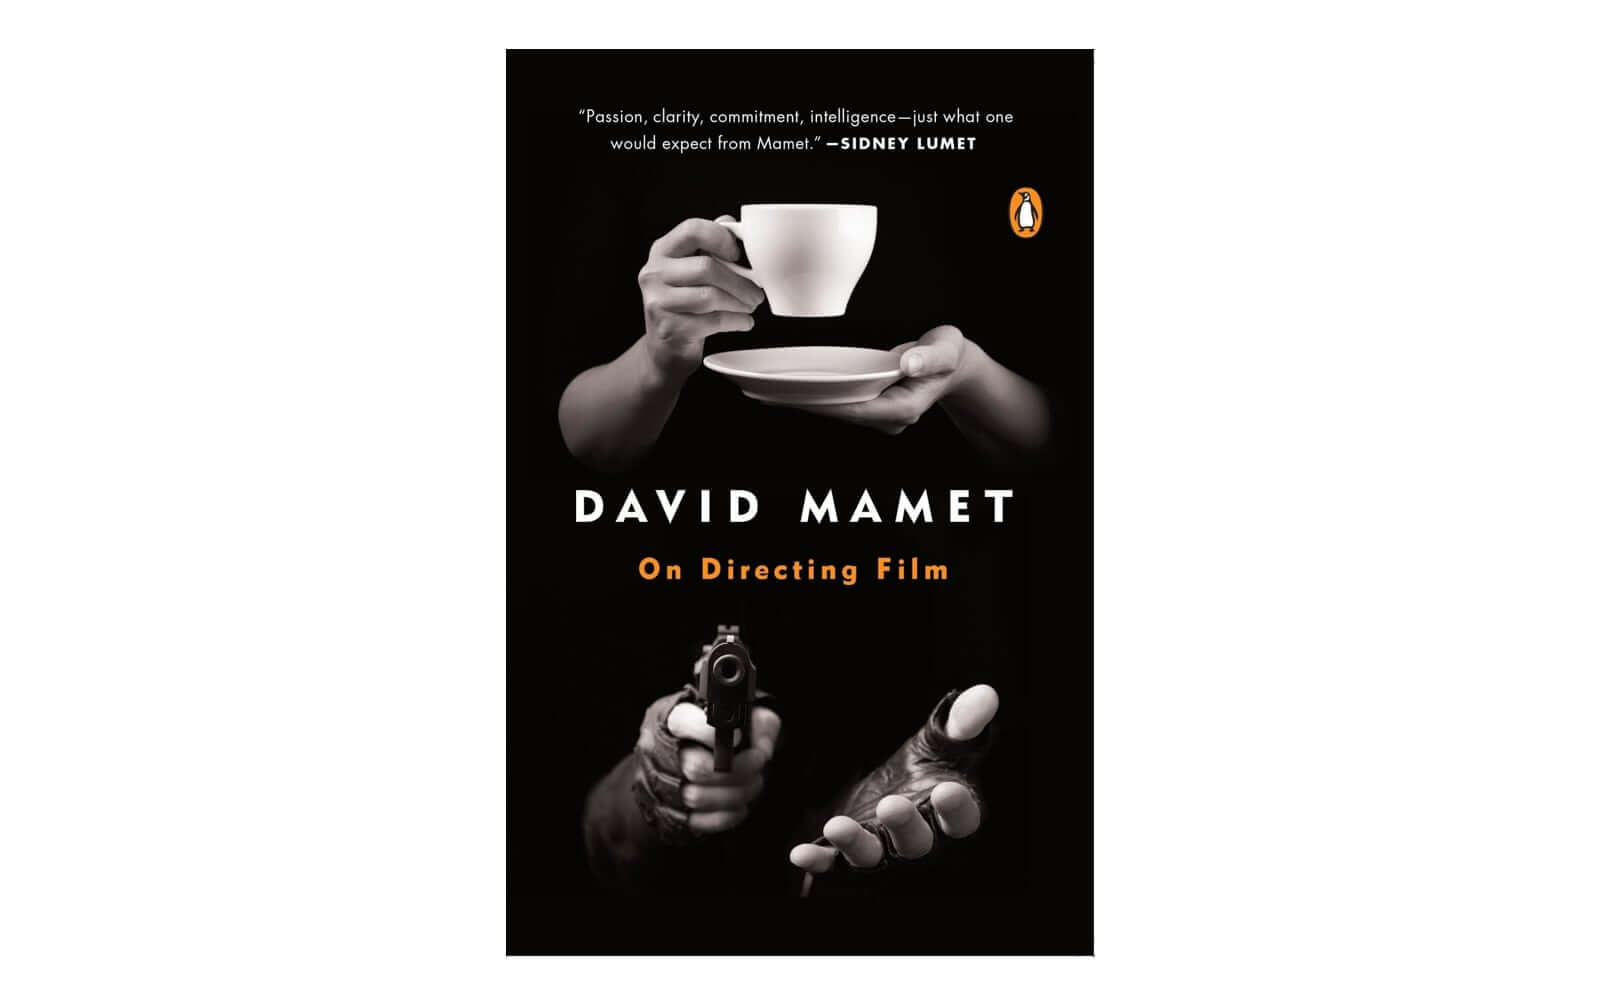 Best Screenwriting Books - Film Direction Books - On Directing Film - David Mamet - Film Production Books - StudioBinder